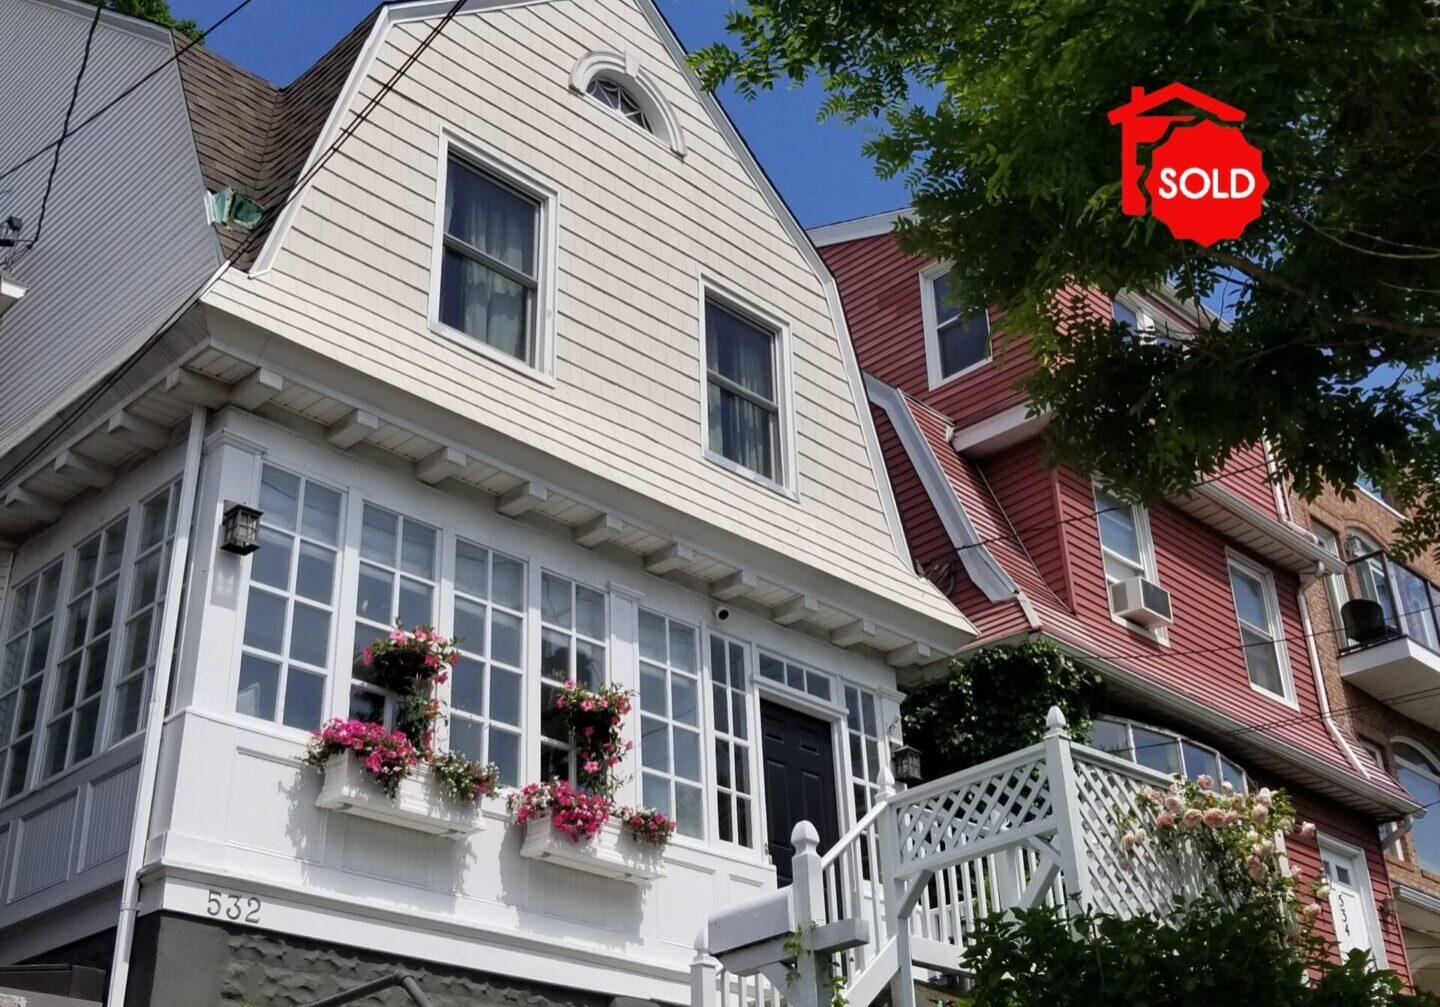 SOLD - 532 Undercliff Ave Edgewater, NJ 07020 <br><br>$899,000 - Beds: 4 - Baths: 1.5